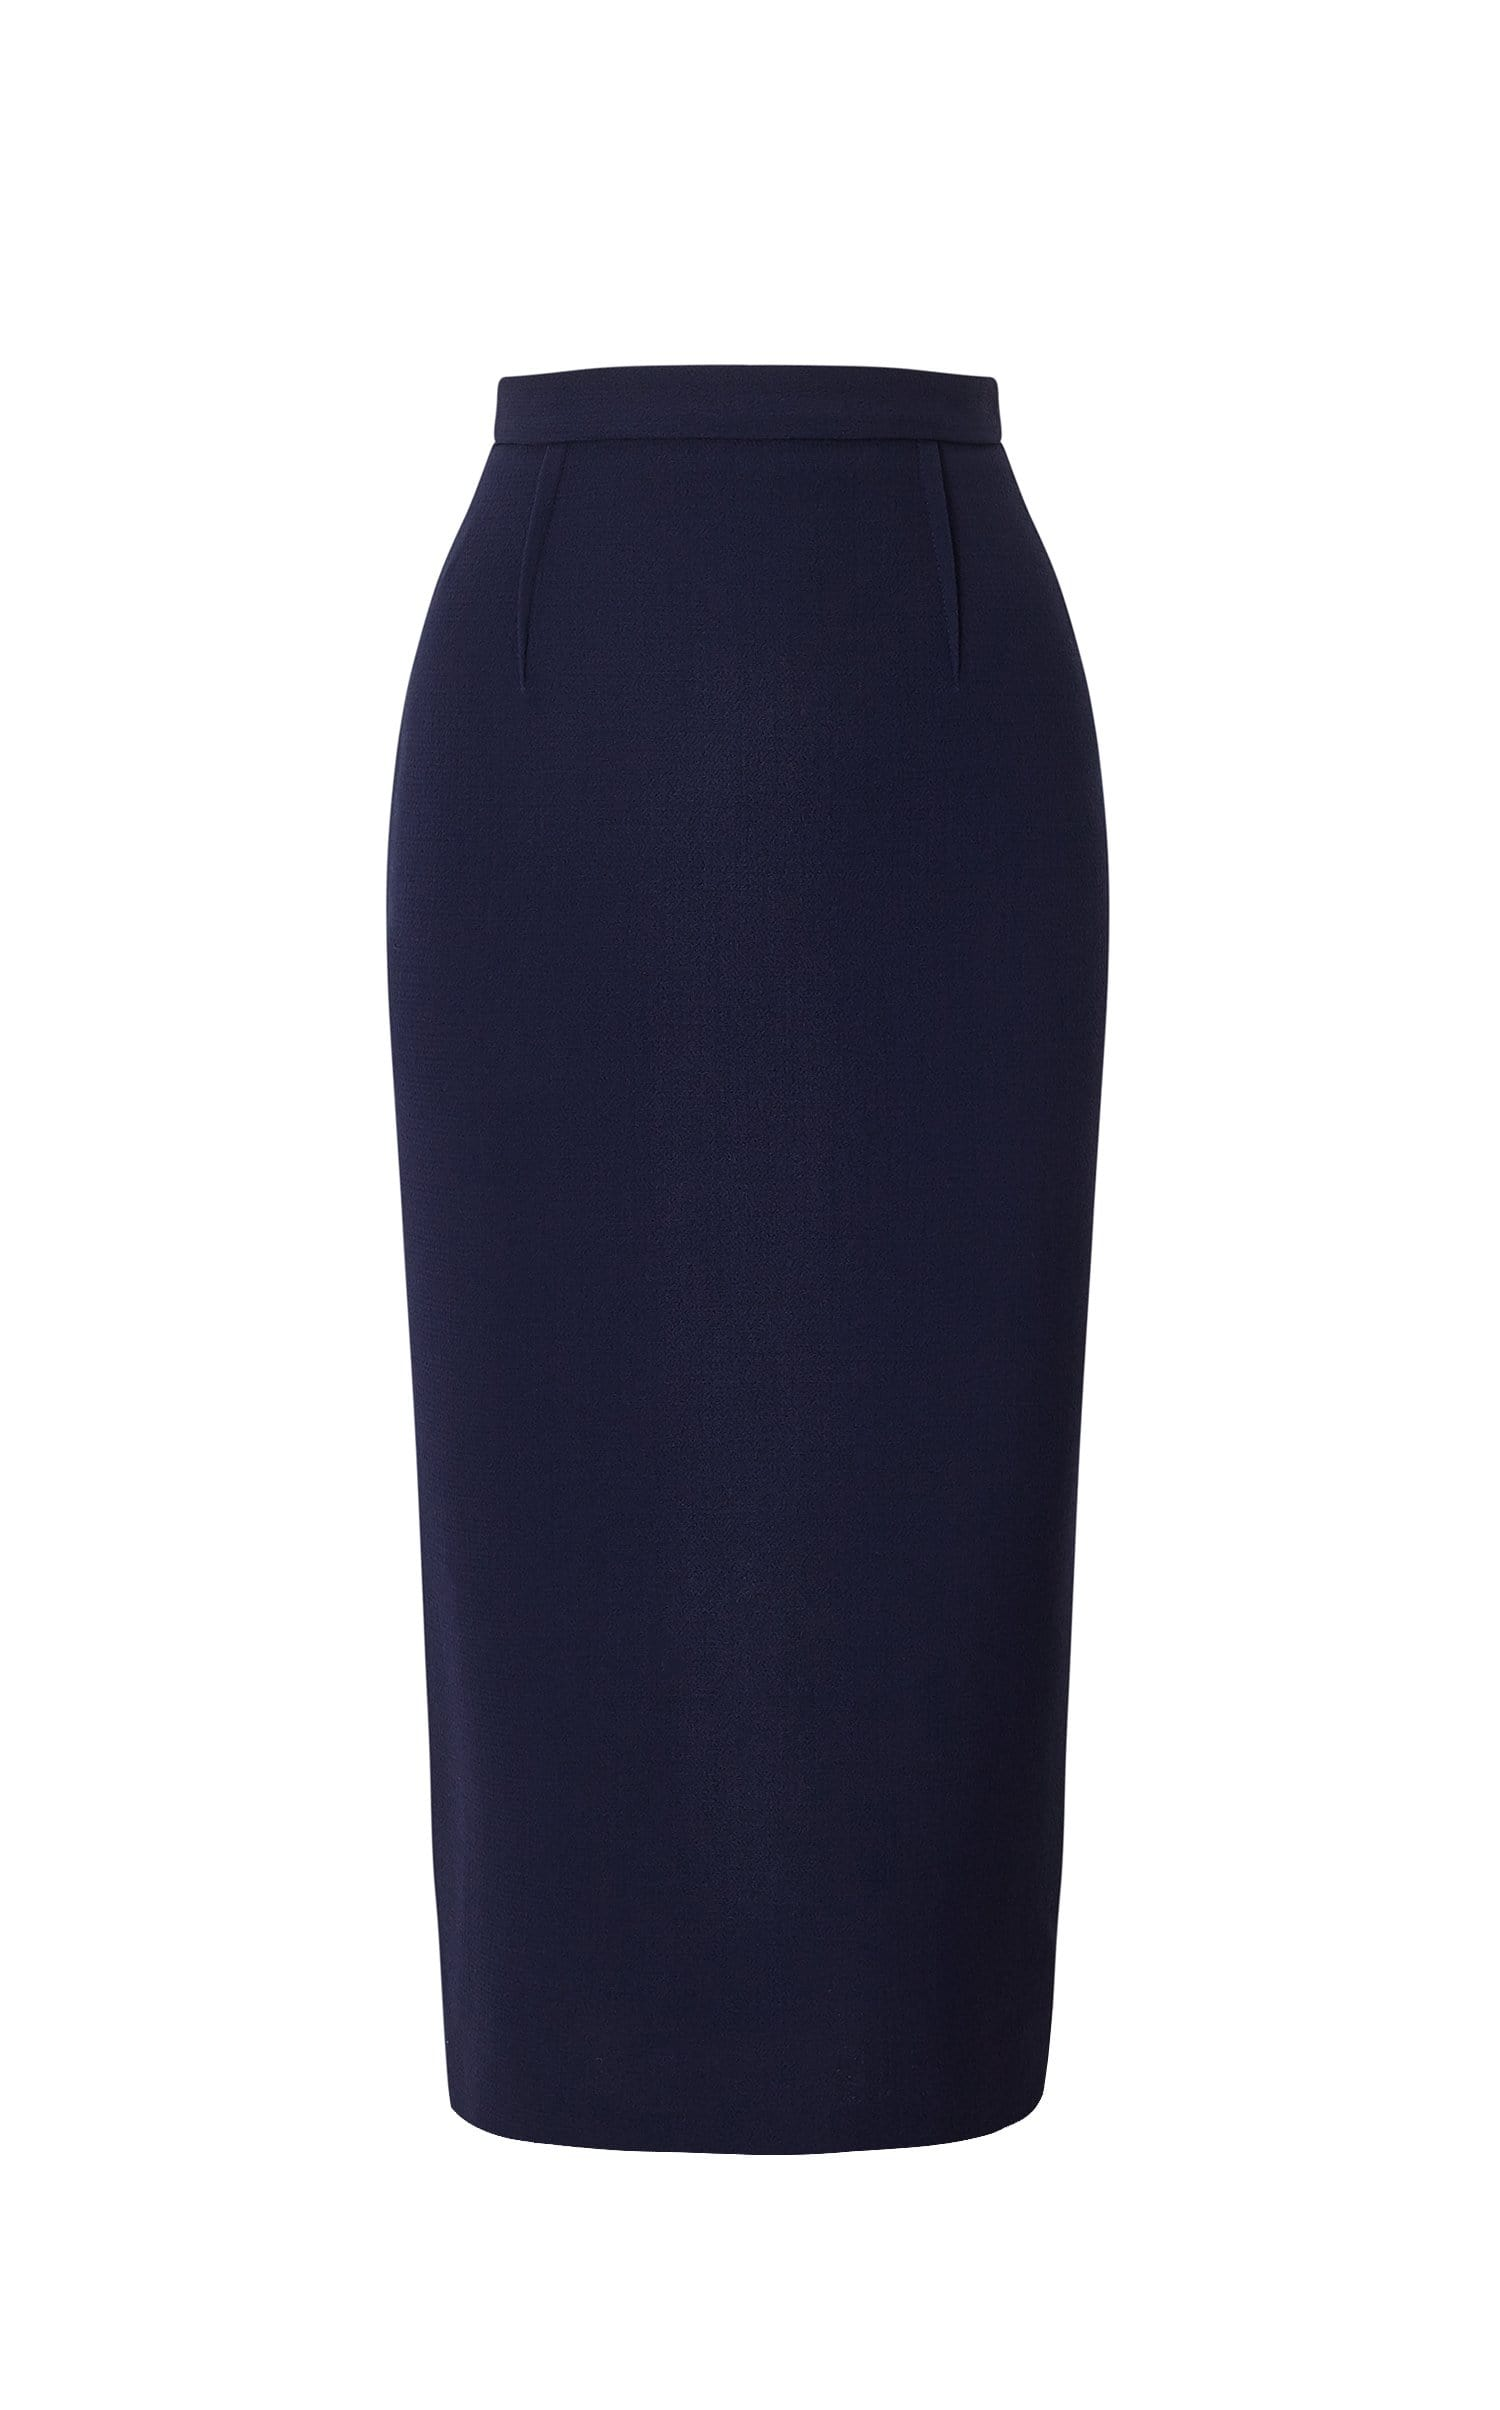 Arreton Skirt In Navy from Roland Mouret